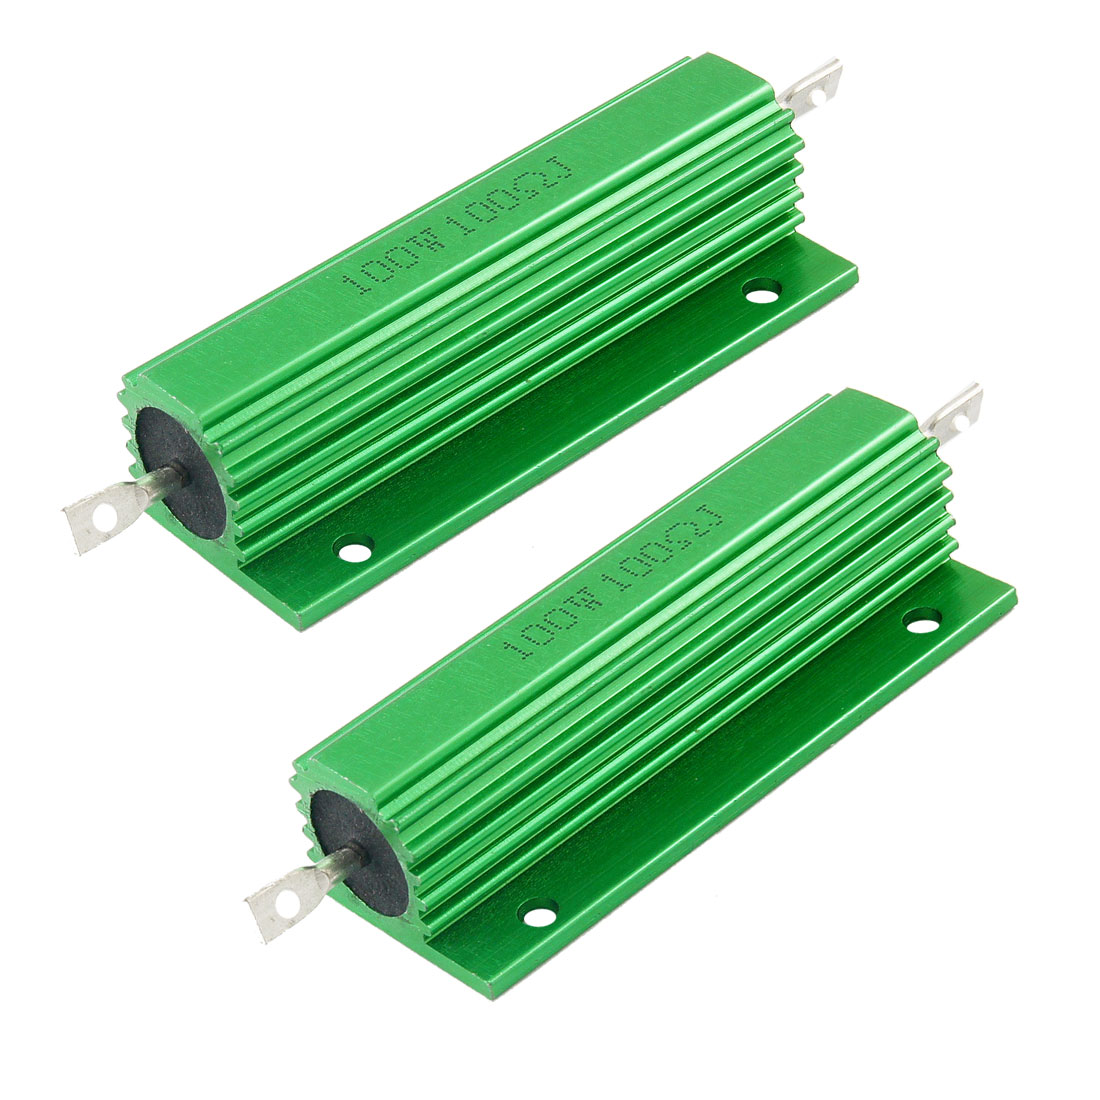 100W 100 Ohm Green Aluminum Housed Wirewound Resistors 2 Pcs